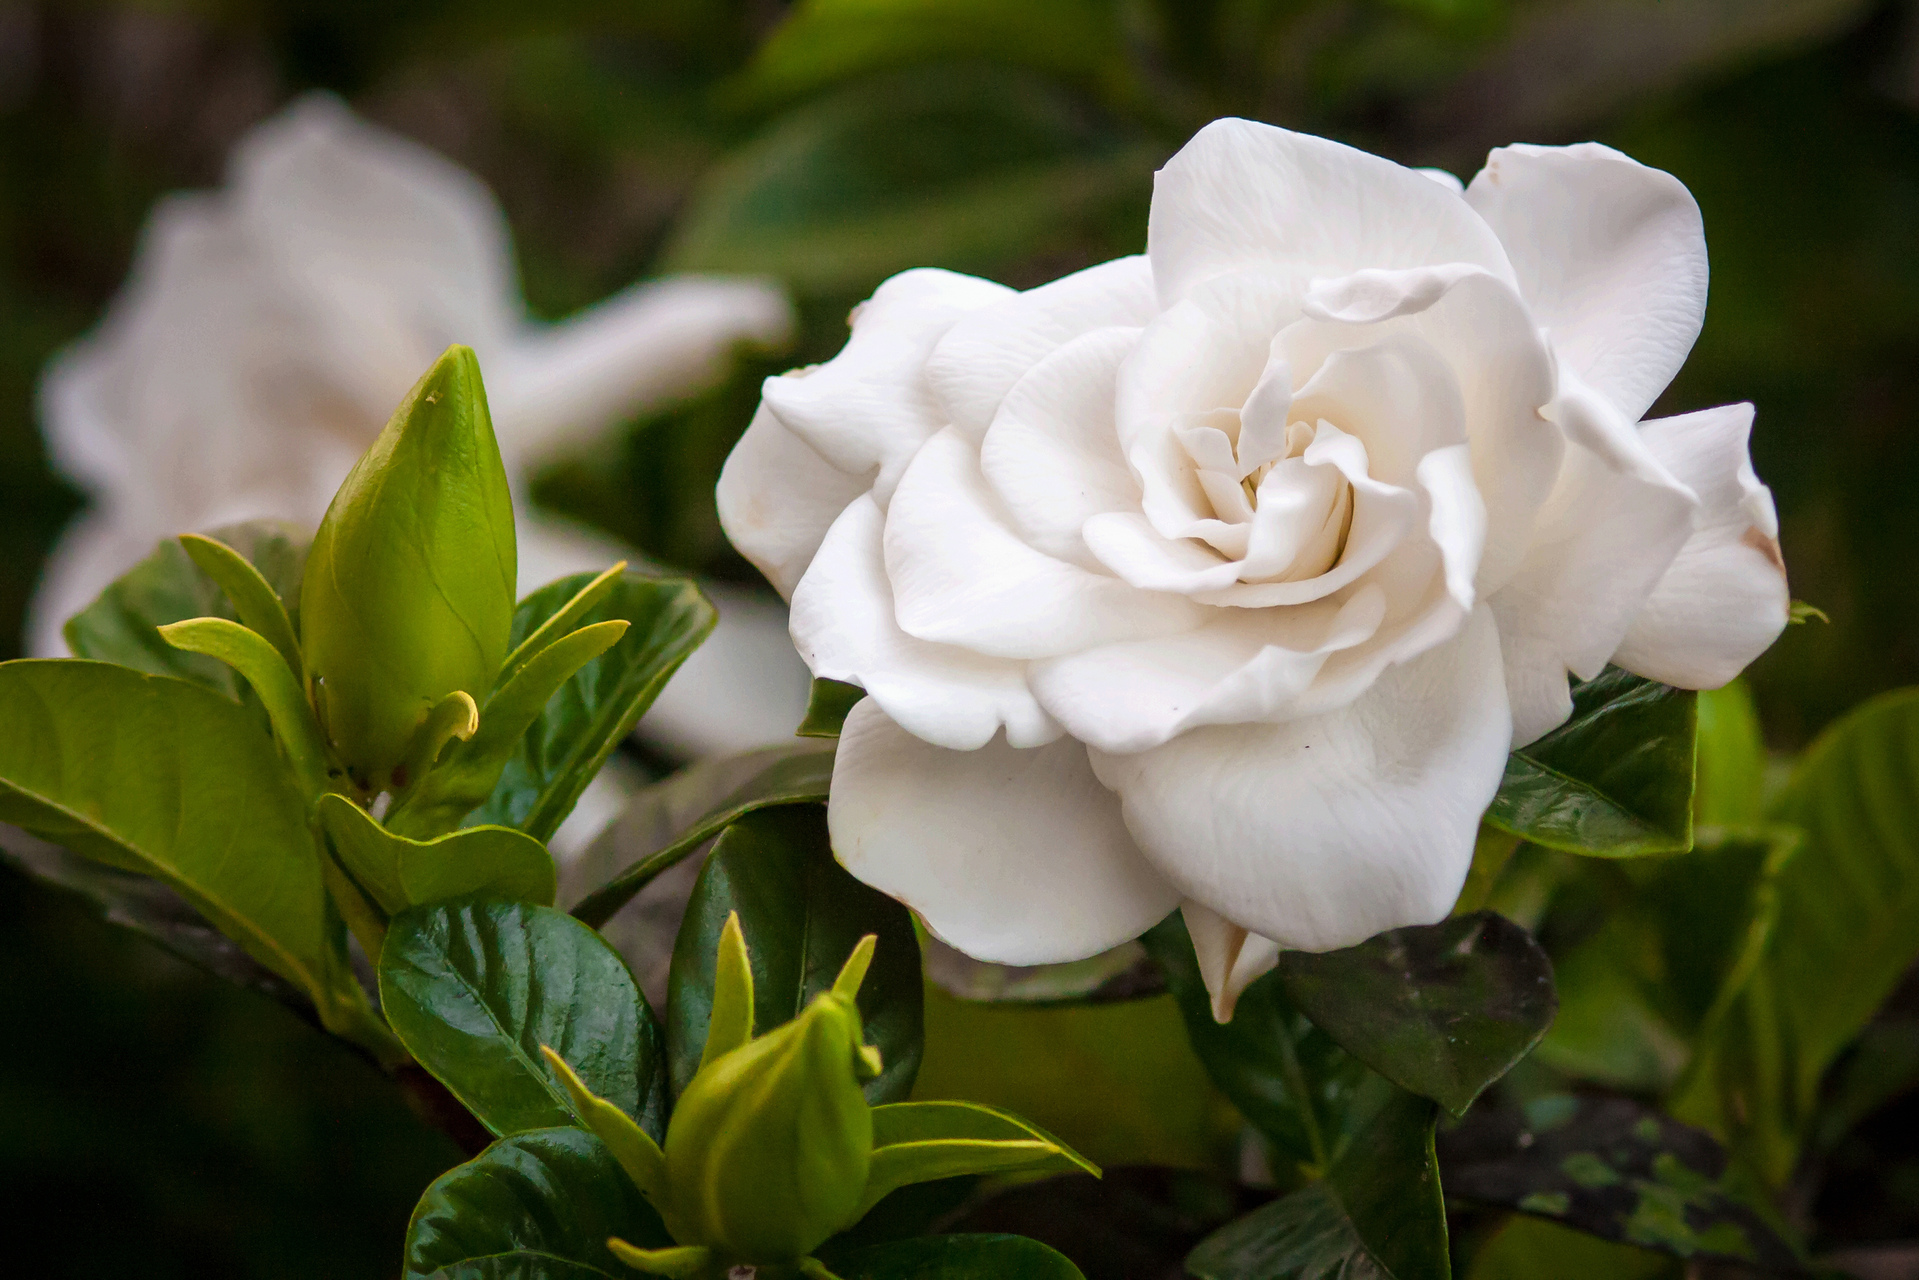 Facts about Gardenias